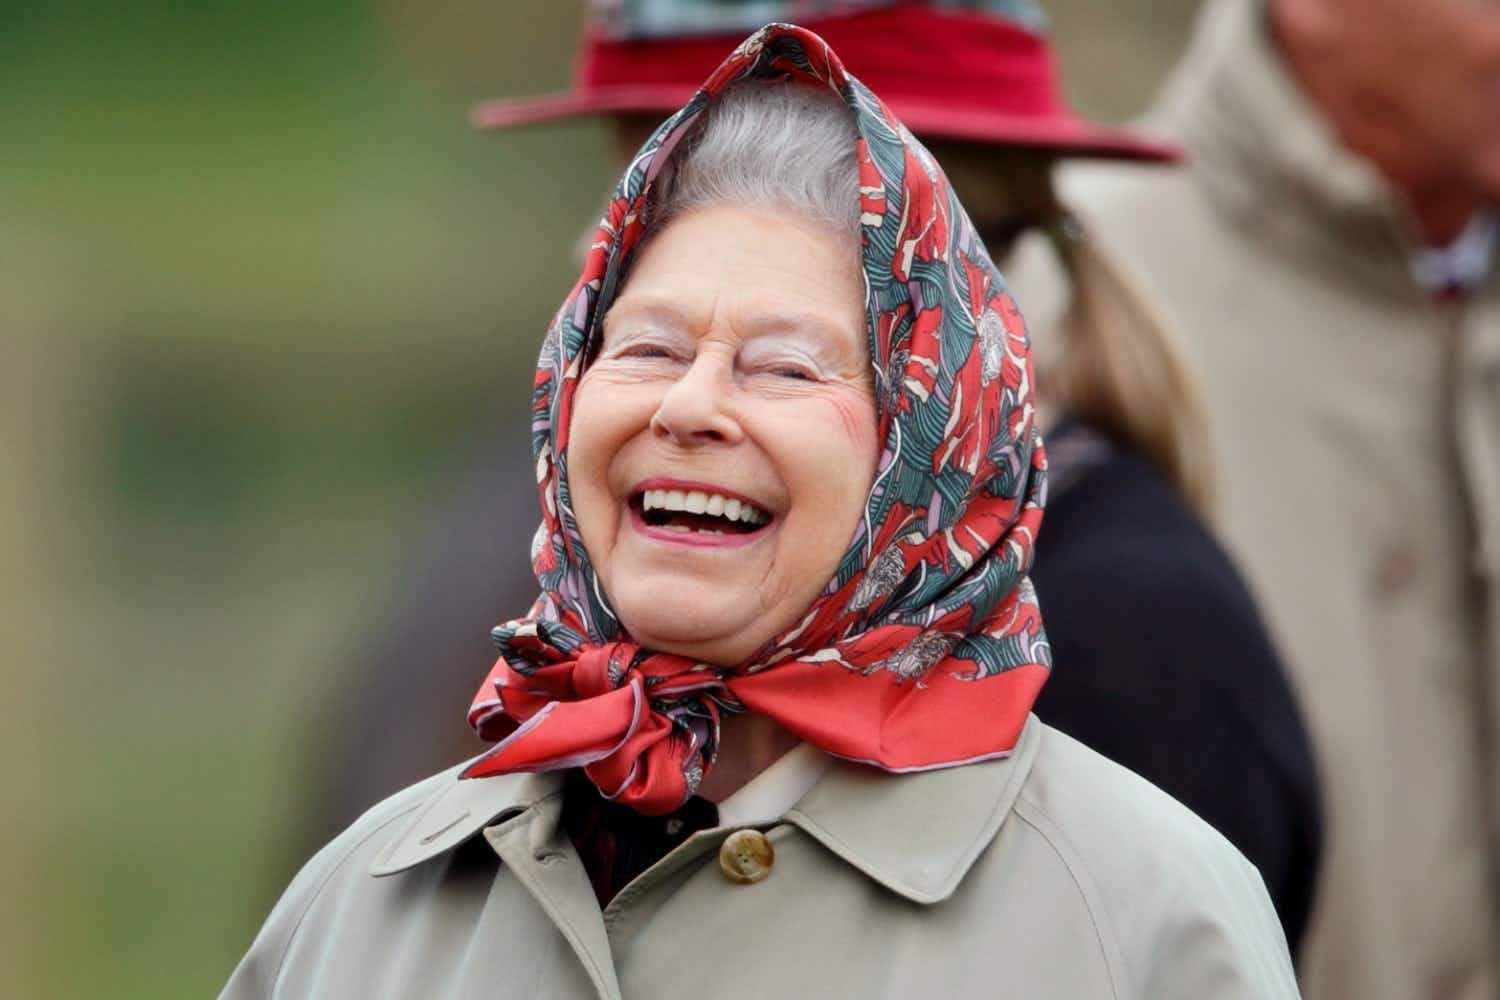 It is known the the Queen has a great sense of humour. Image: Max Mumby/Indigo/Getty Images